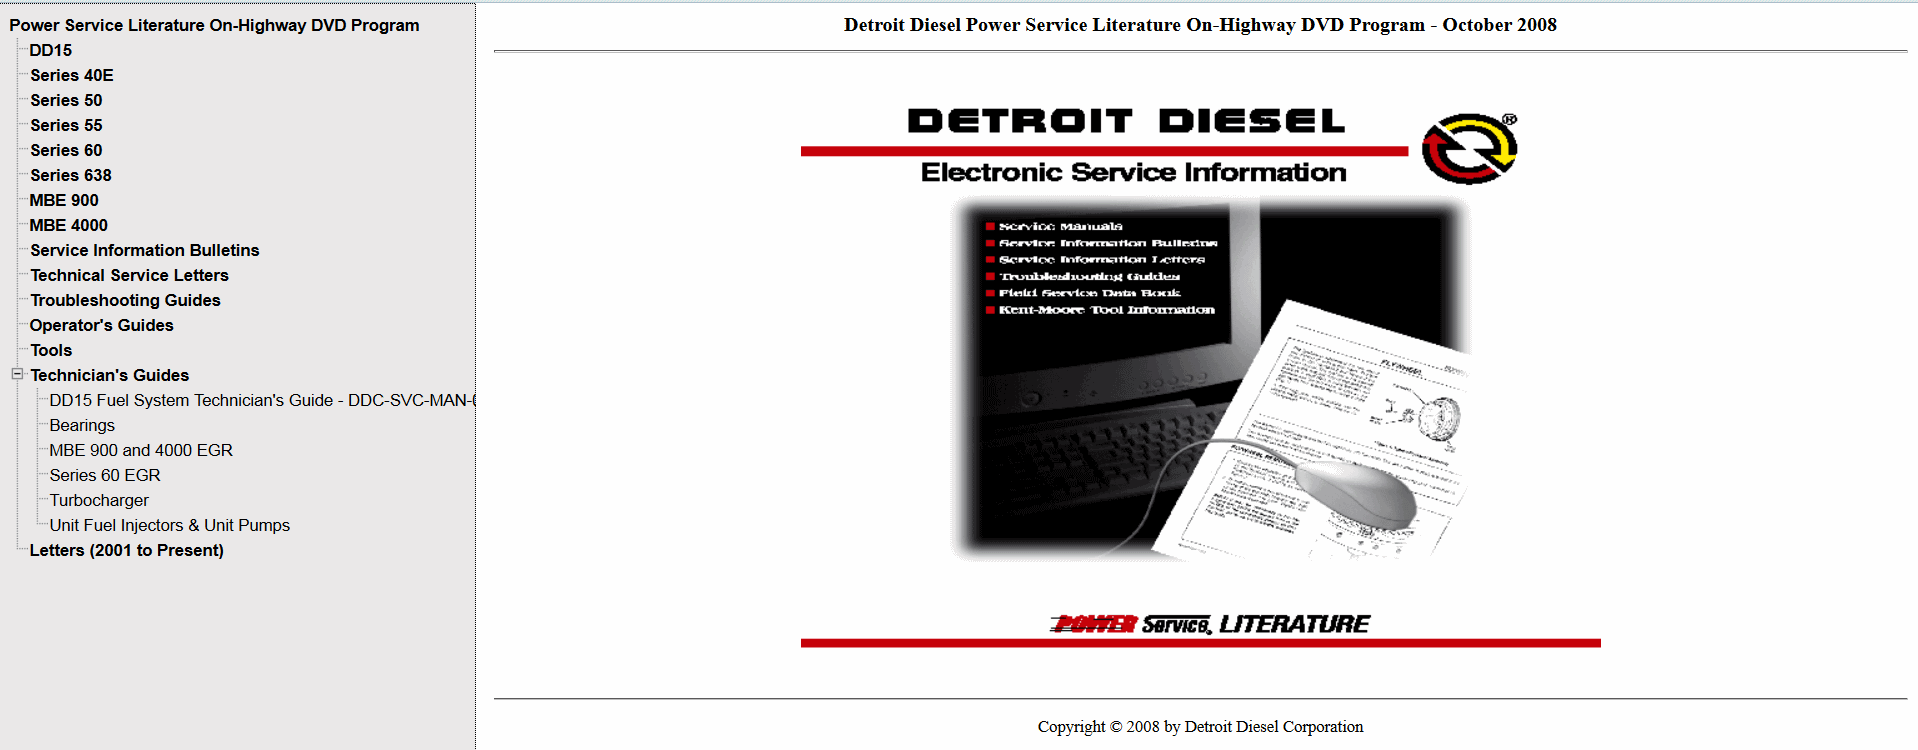 repair manual Detroit Diesel Power Service Literature On-Highway